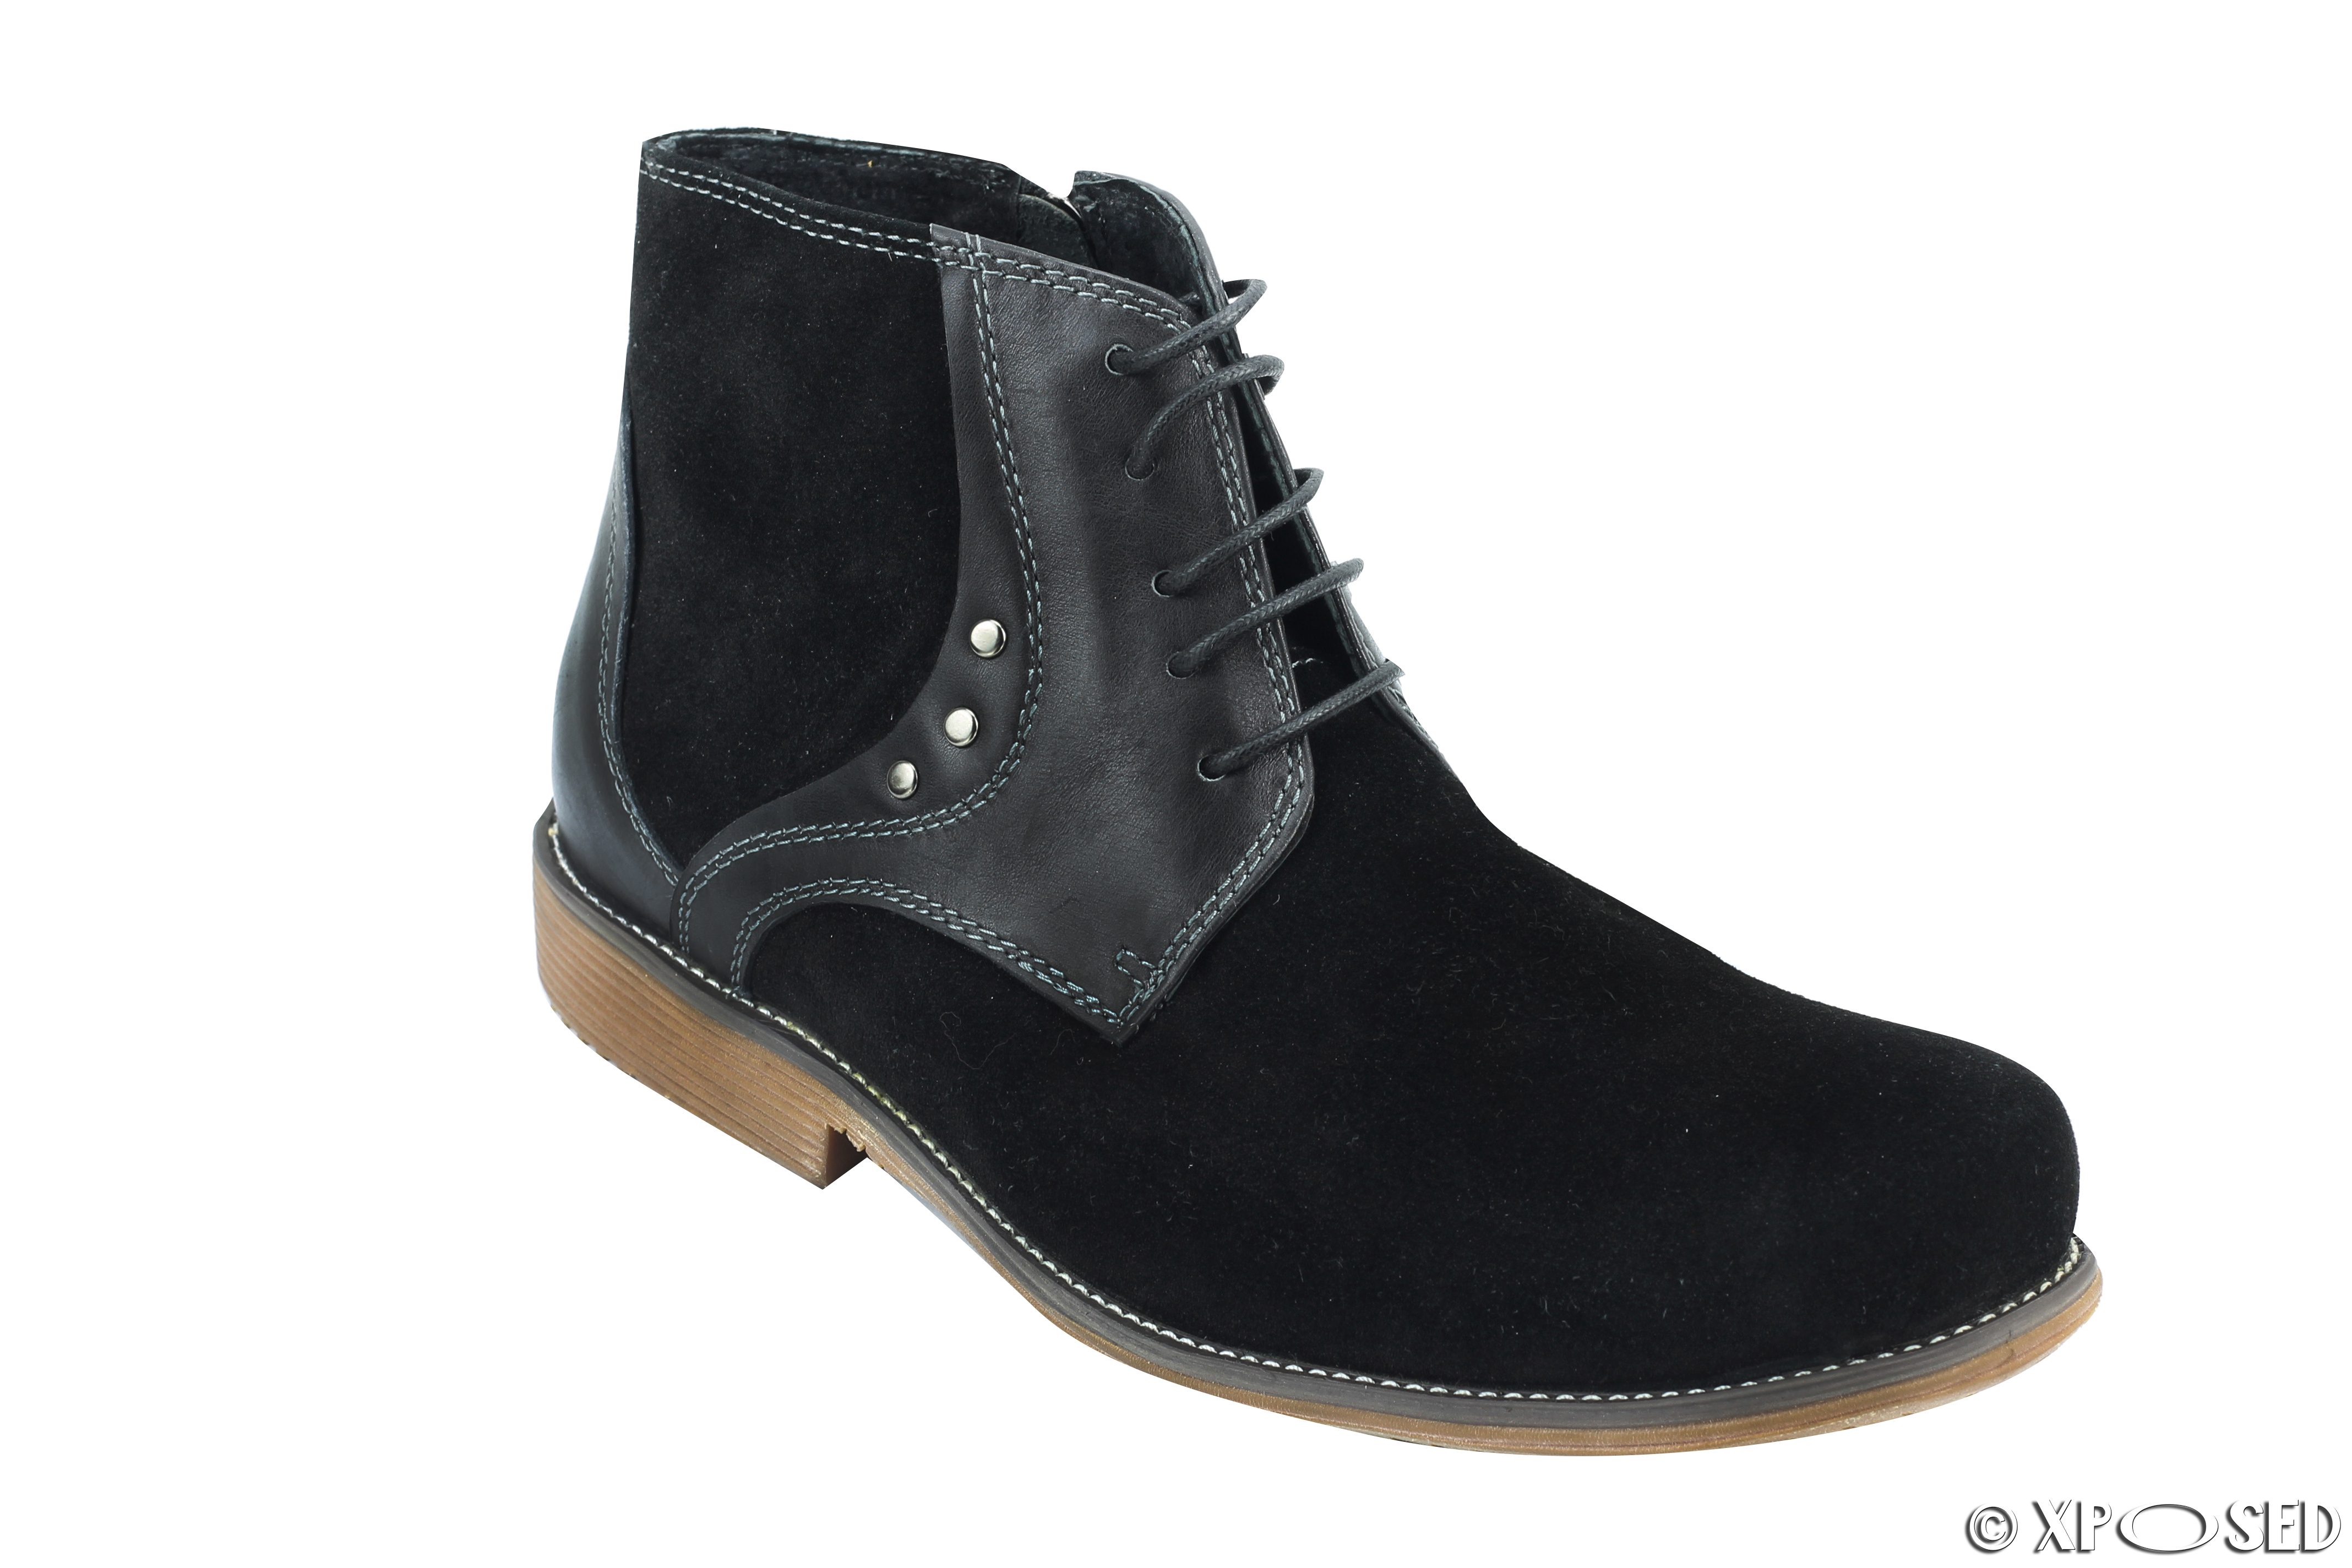 Complete your footwear collection with men's boots from Kohl's. From fashion-forward to fully functional, the boots for men from Kohl's meet you every need. Stay on thrend with our selection of men's black chukka boots.